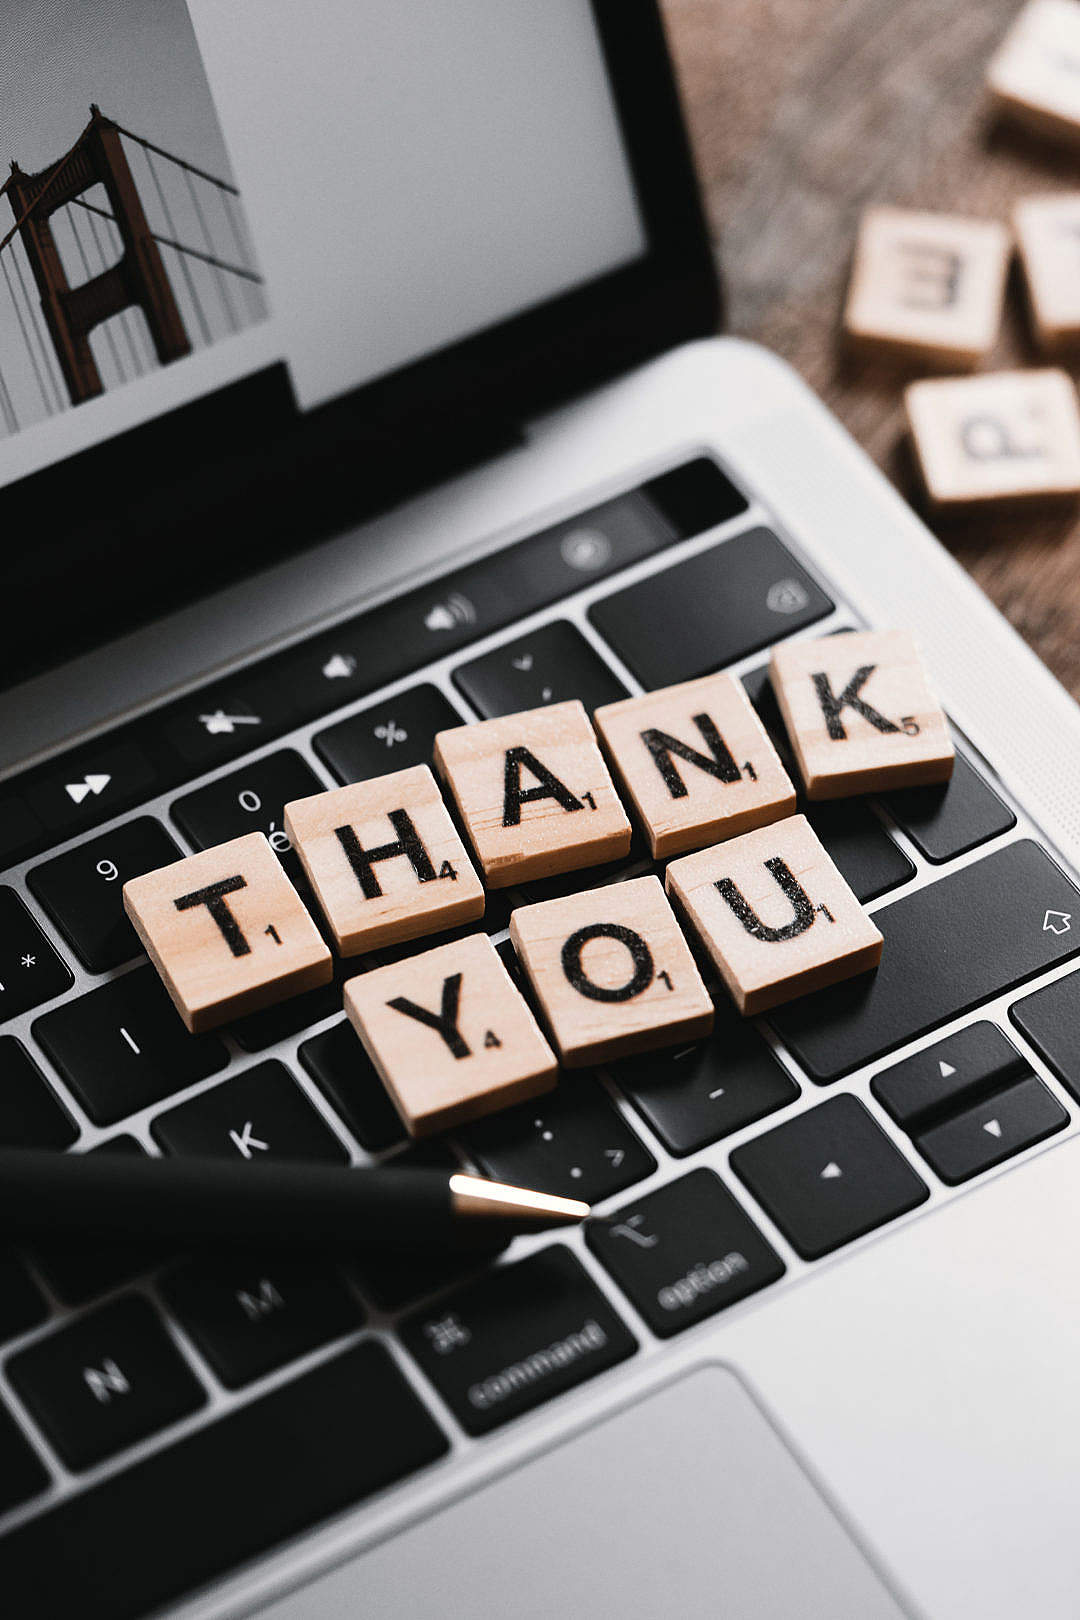 Download Thank You FREE Stock Photo